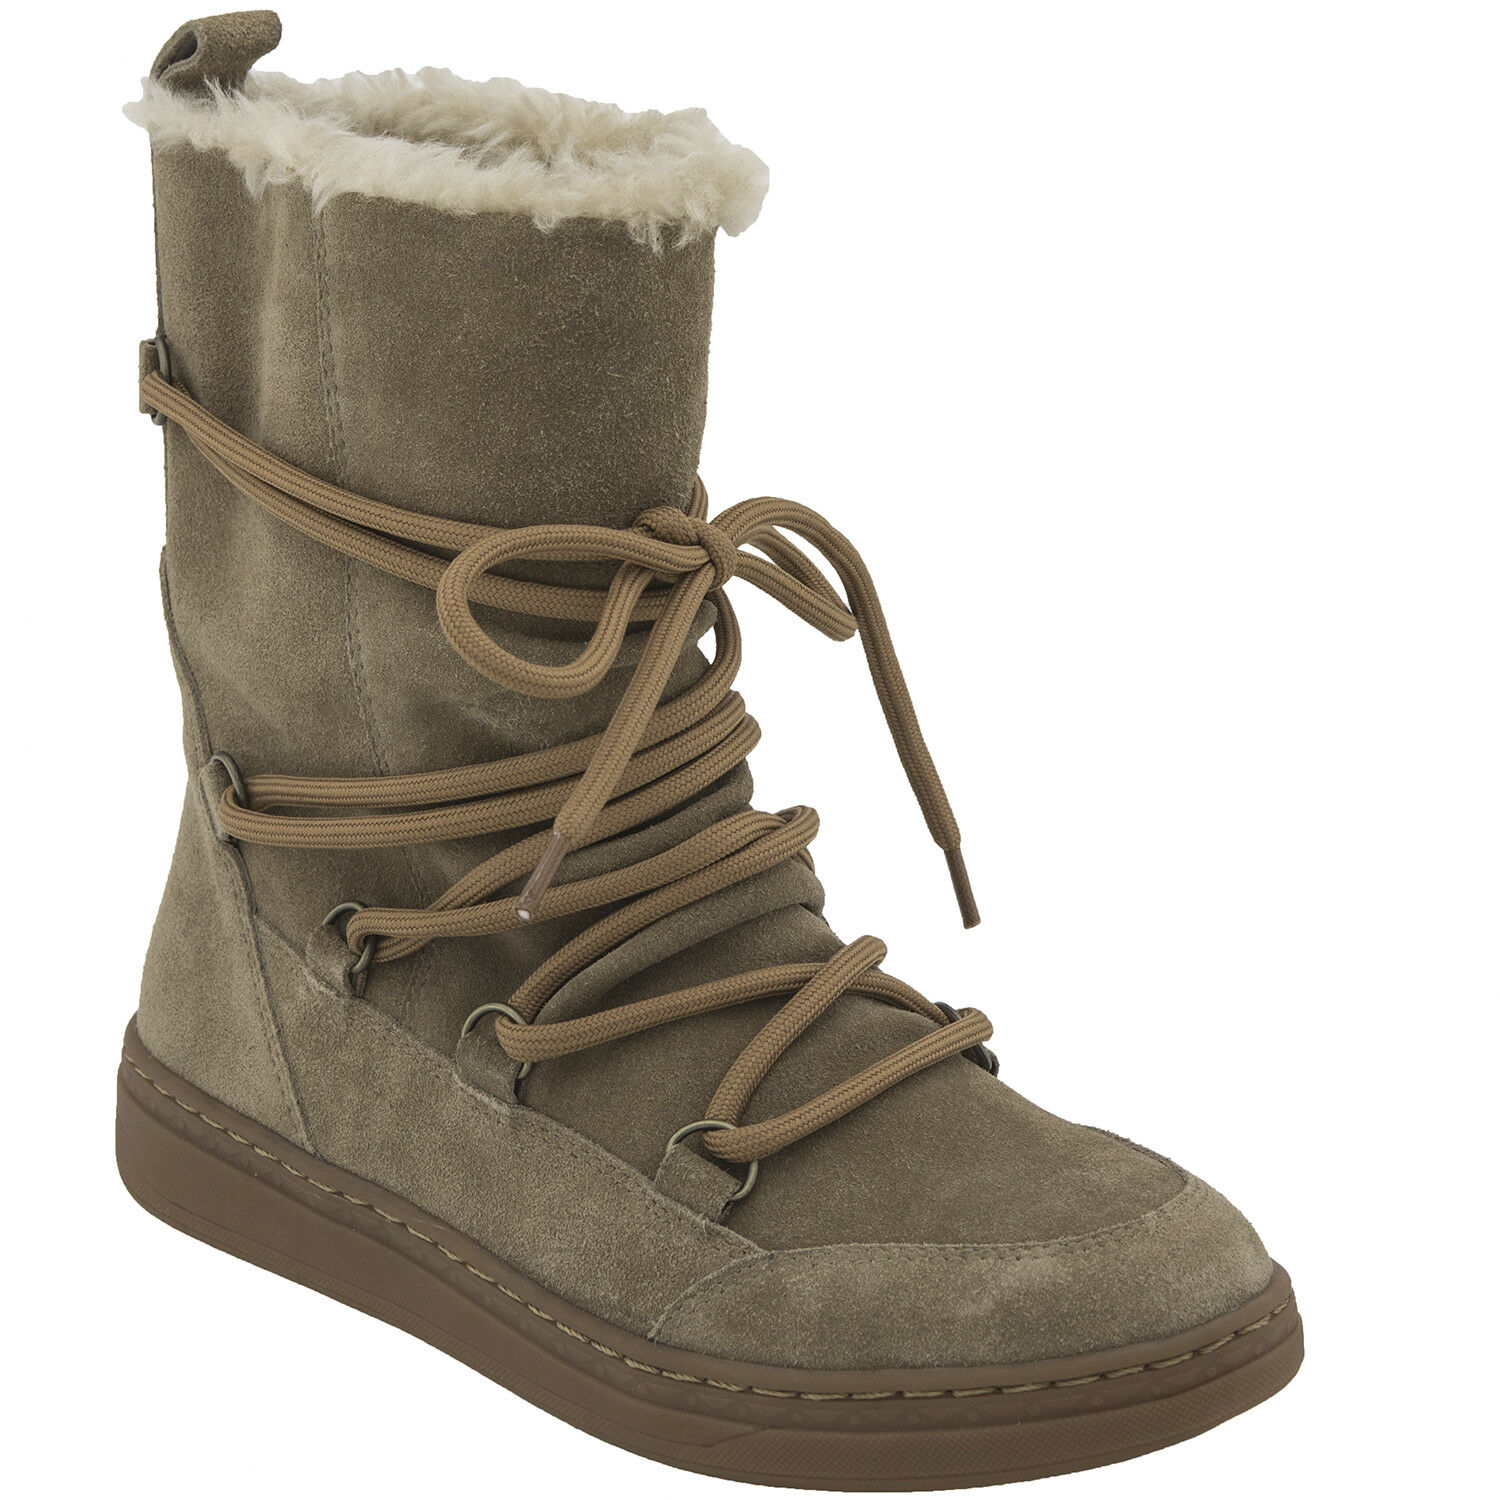 Earth Shoes Zodiac Winter Snow Boot Water Resistant Light Tan Donna Size 8